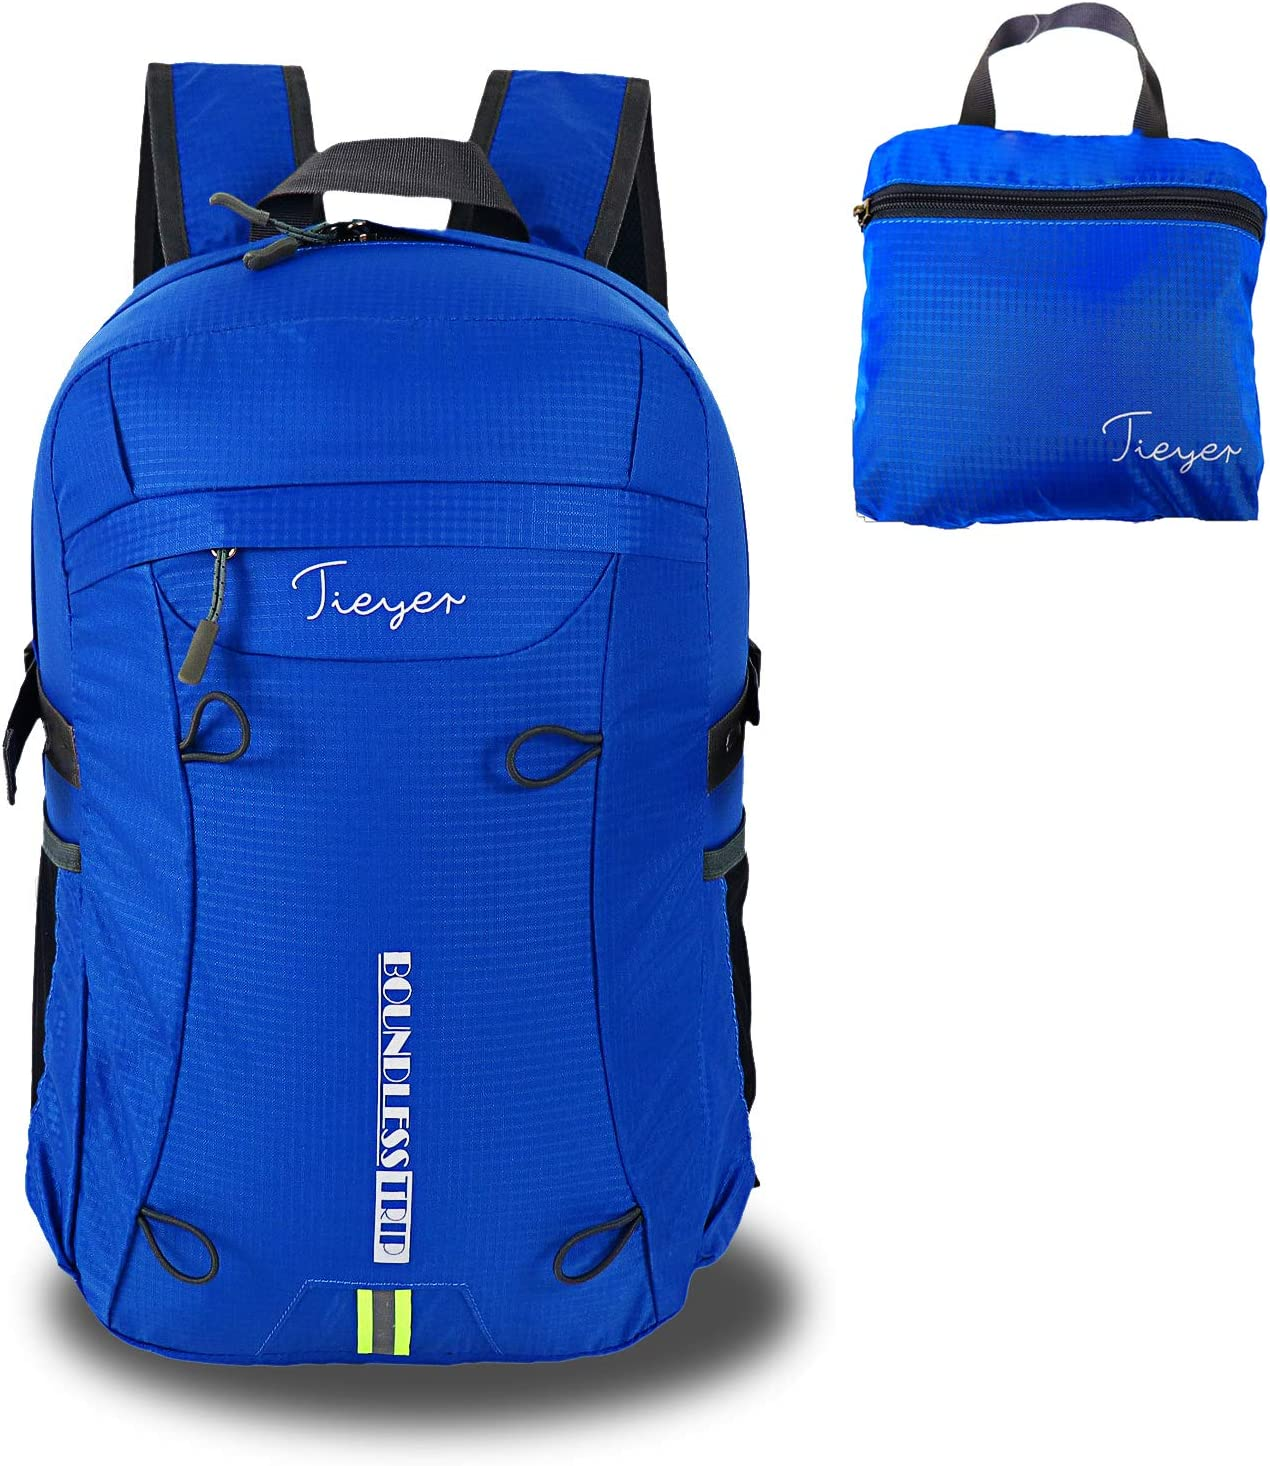 Tieyer Back to School Bags Durable Lightweight Packable Backpack Water Resistant Travel Hiking Daypack Ultralight Foldable Camping Outdoor Backpack Little Bag for Man Woman